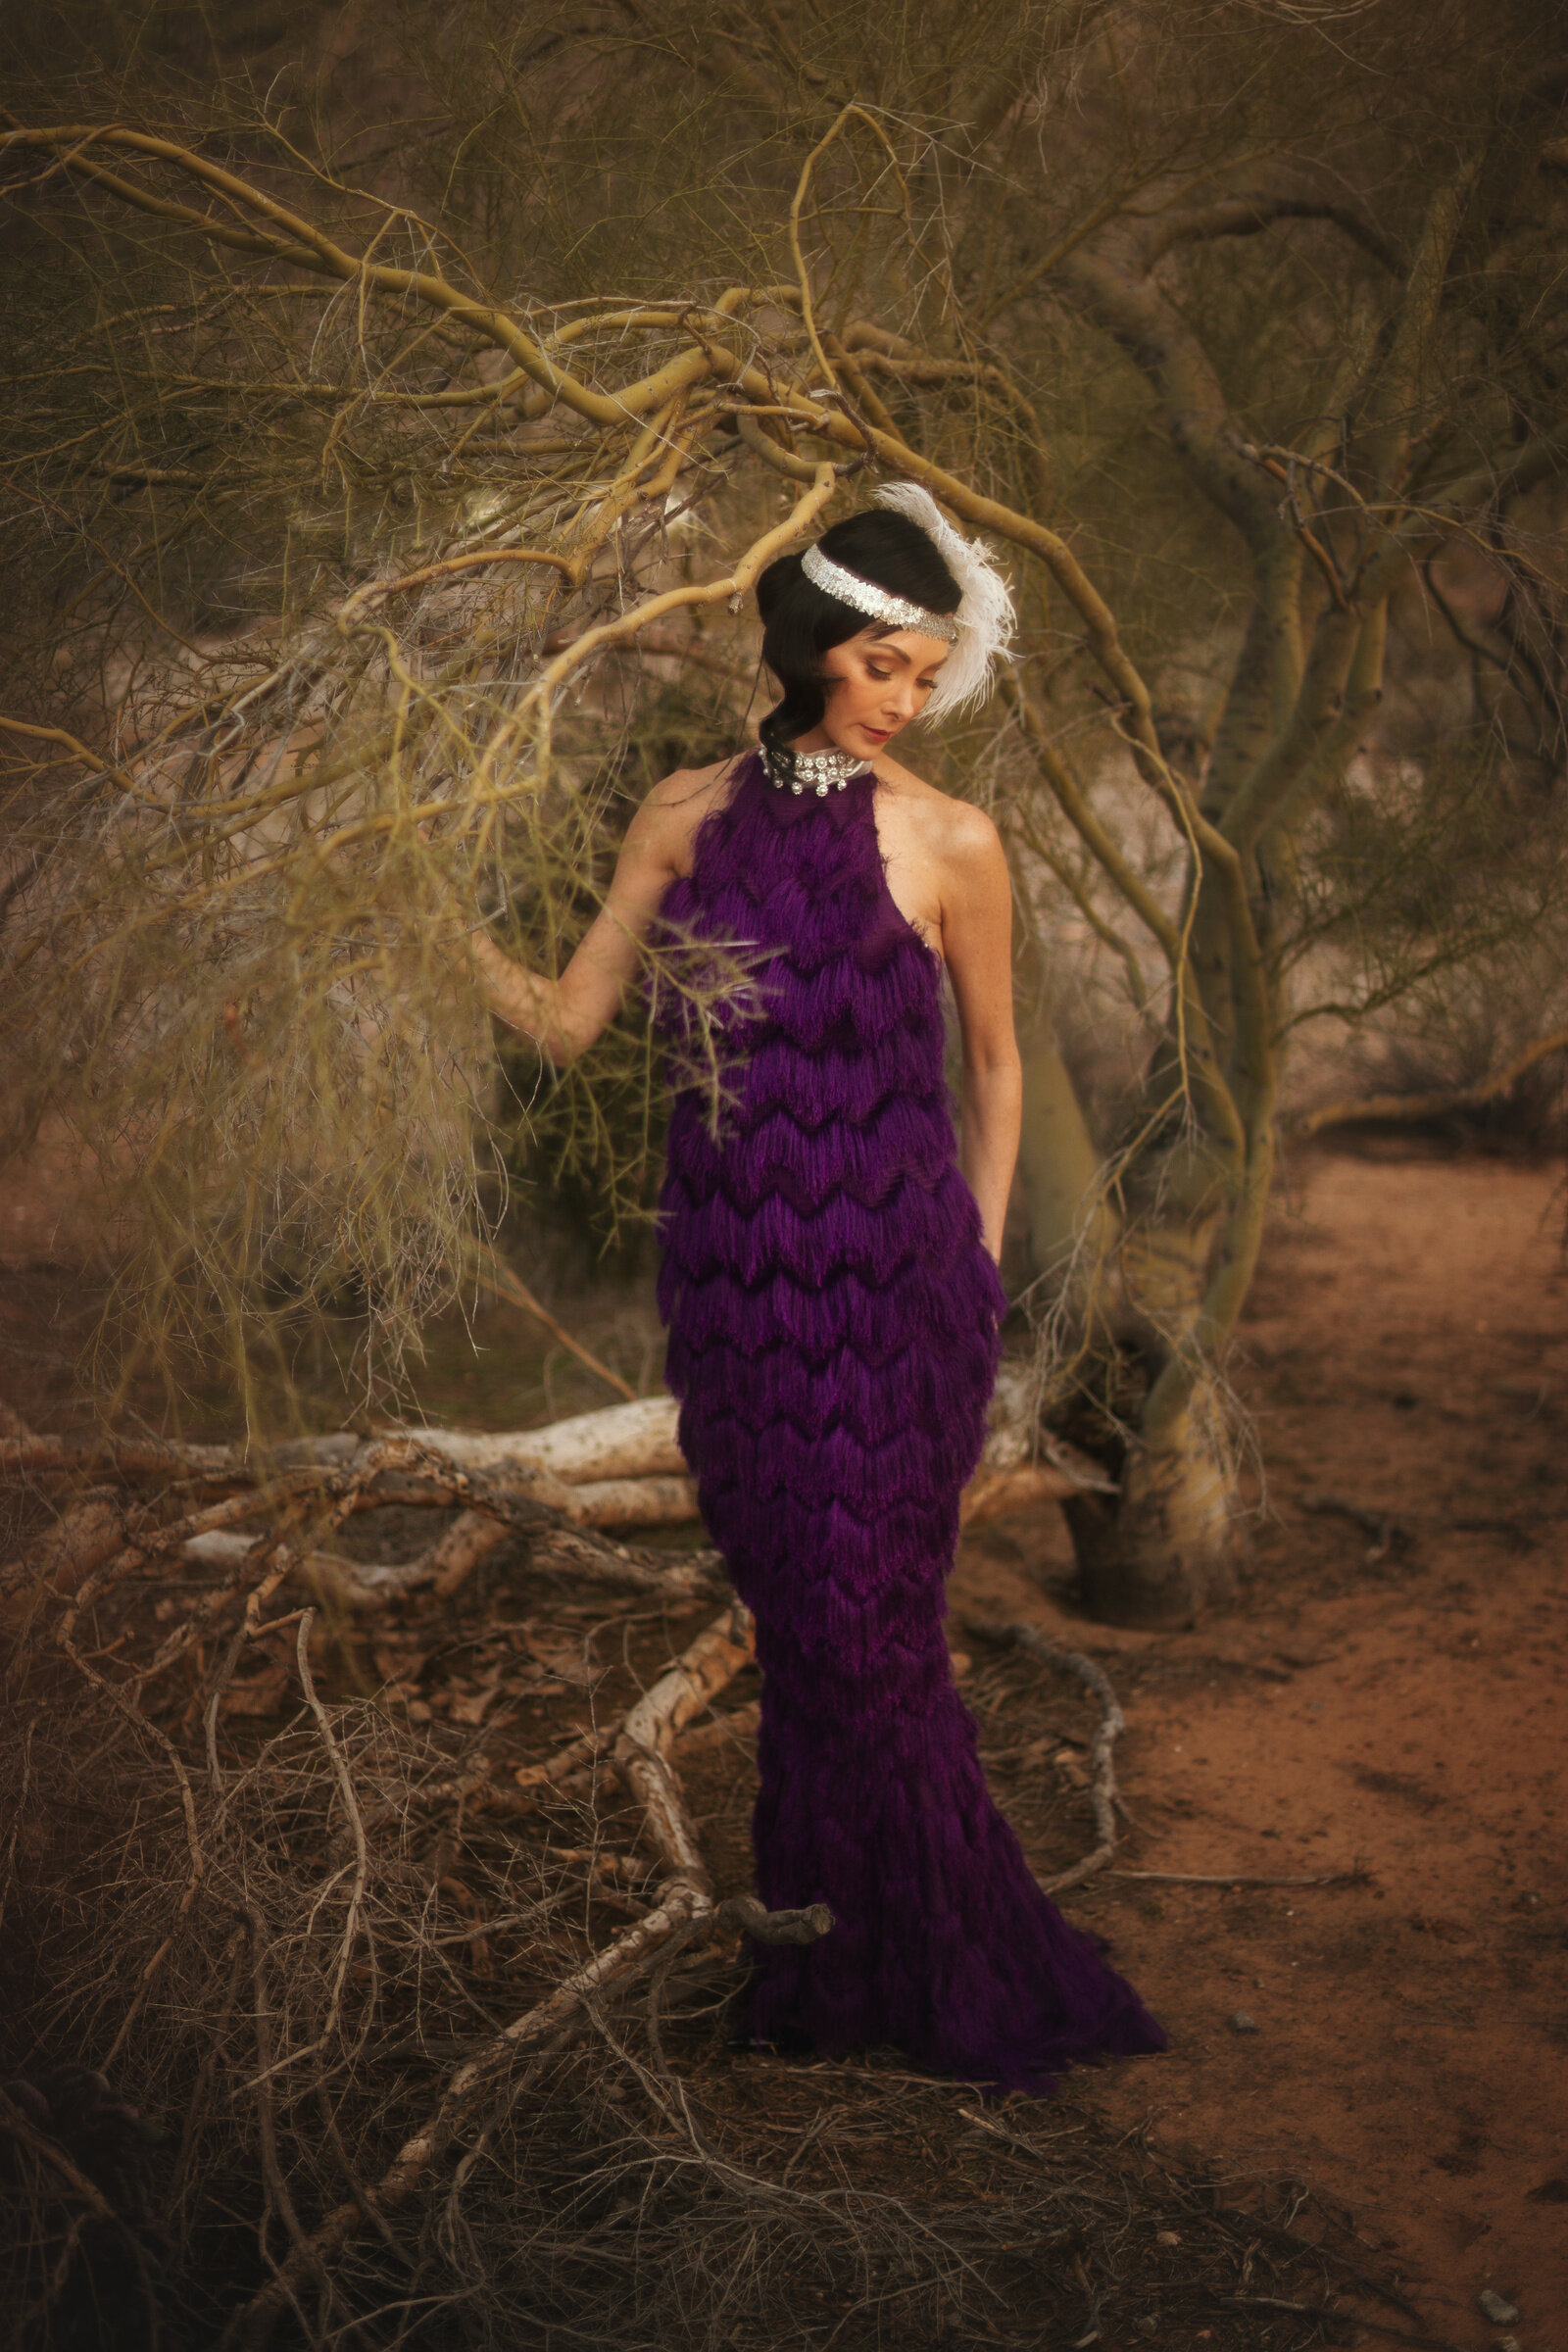 One of a kind high neck purple mermaid style evening dress made of fringe by Alis Fashion Design.jpg